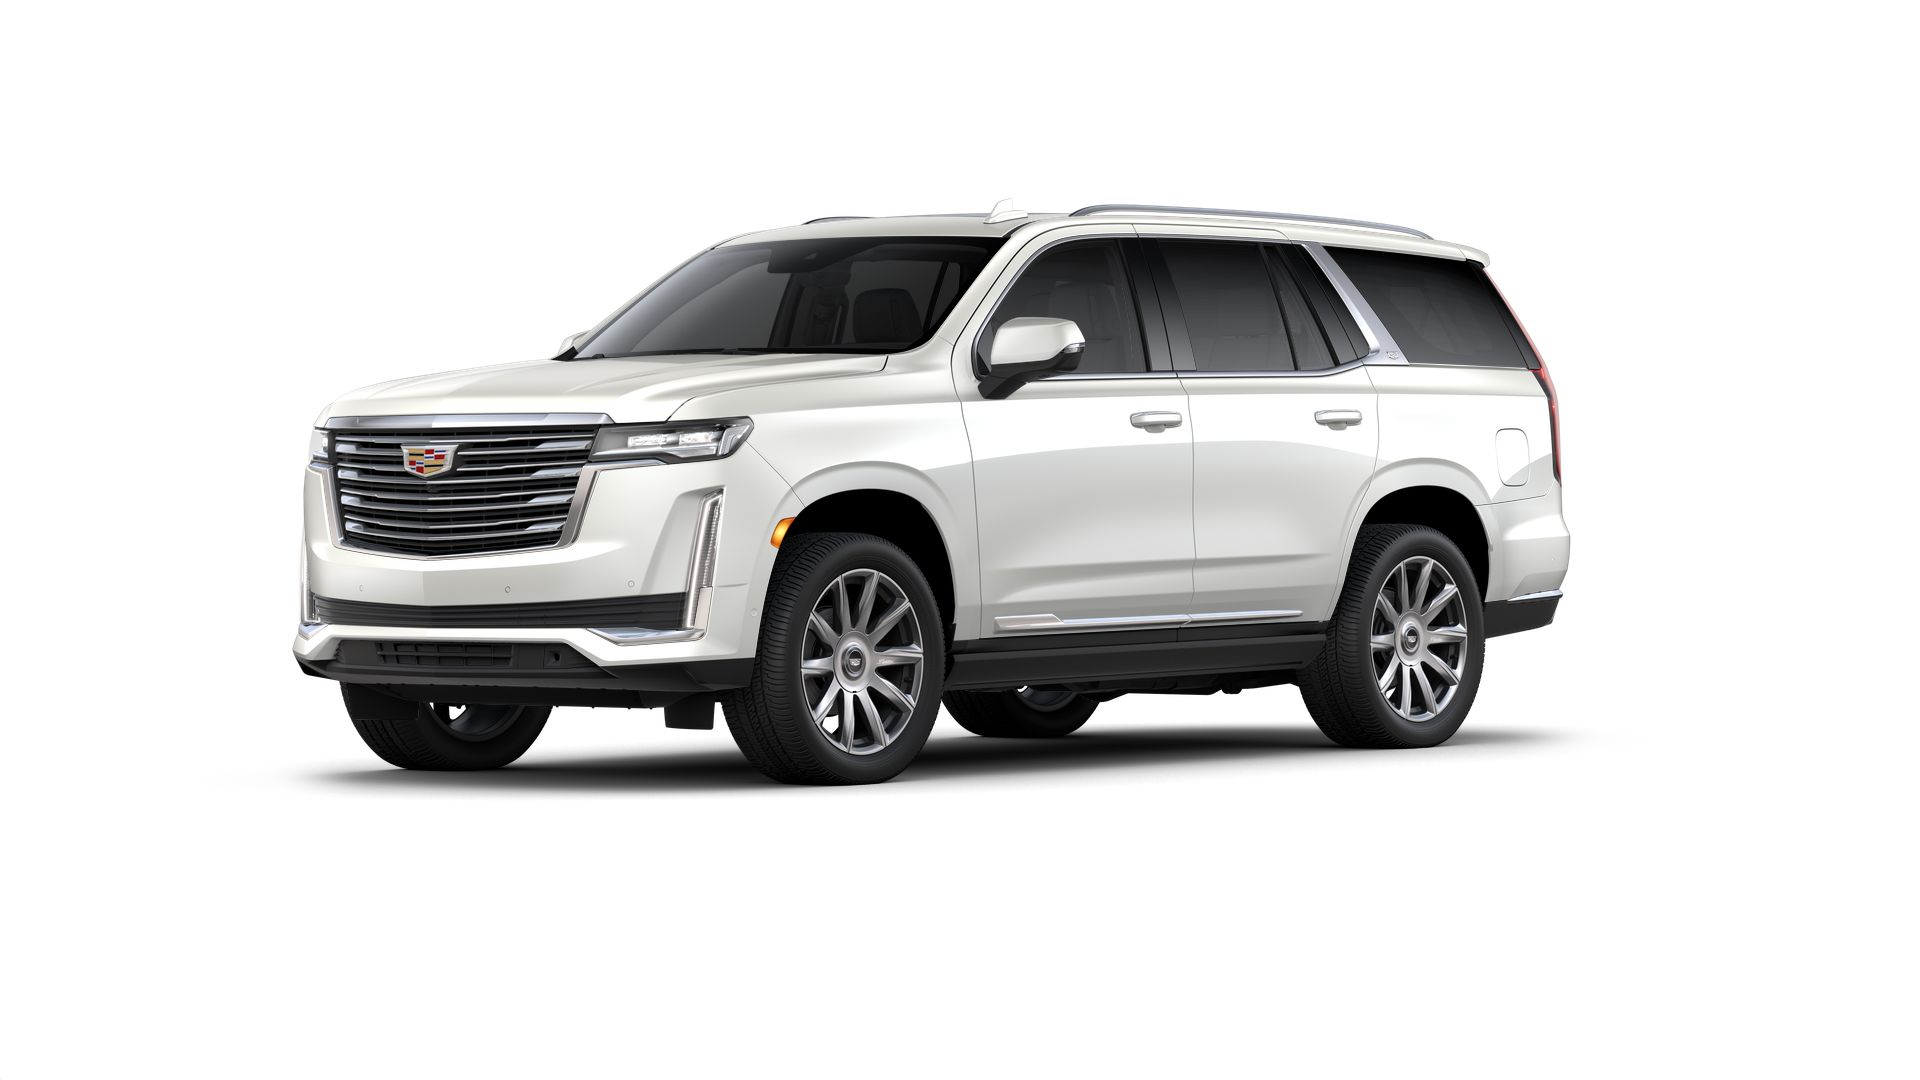 New 2021 Cadillac Escalade Premium Luxury Platinum